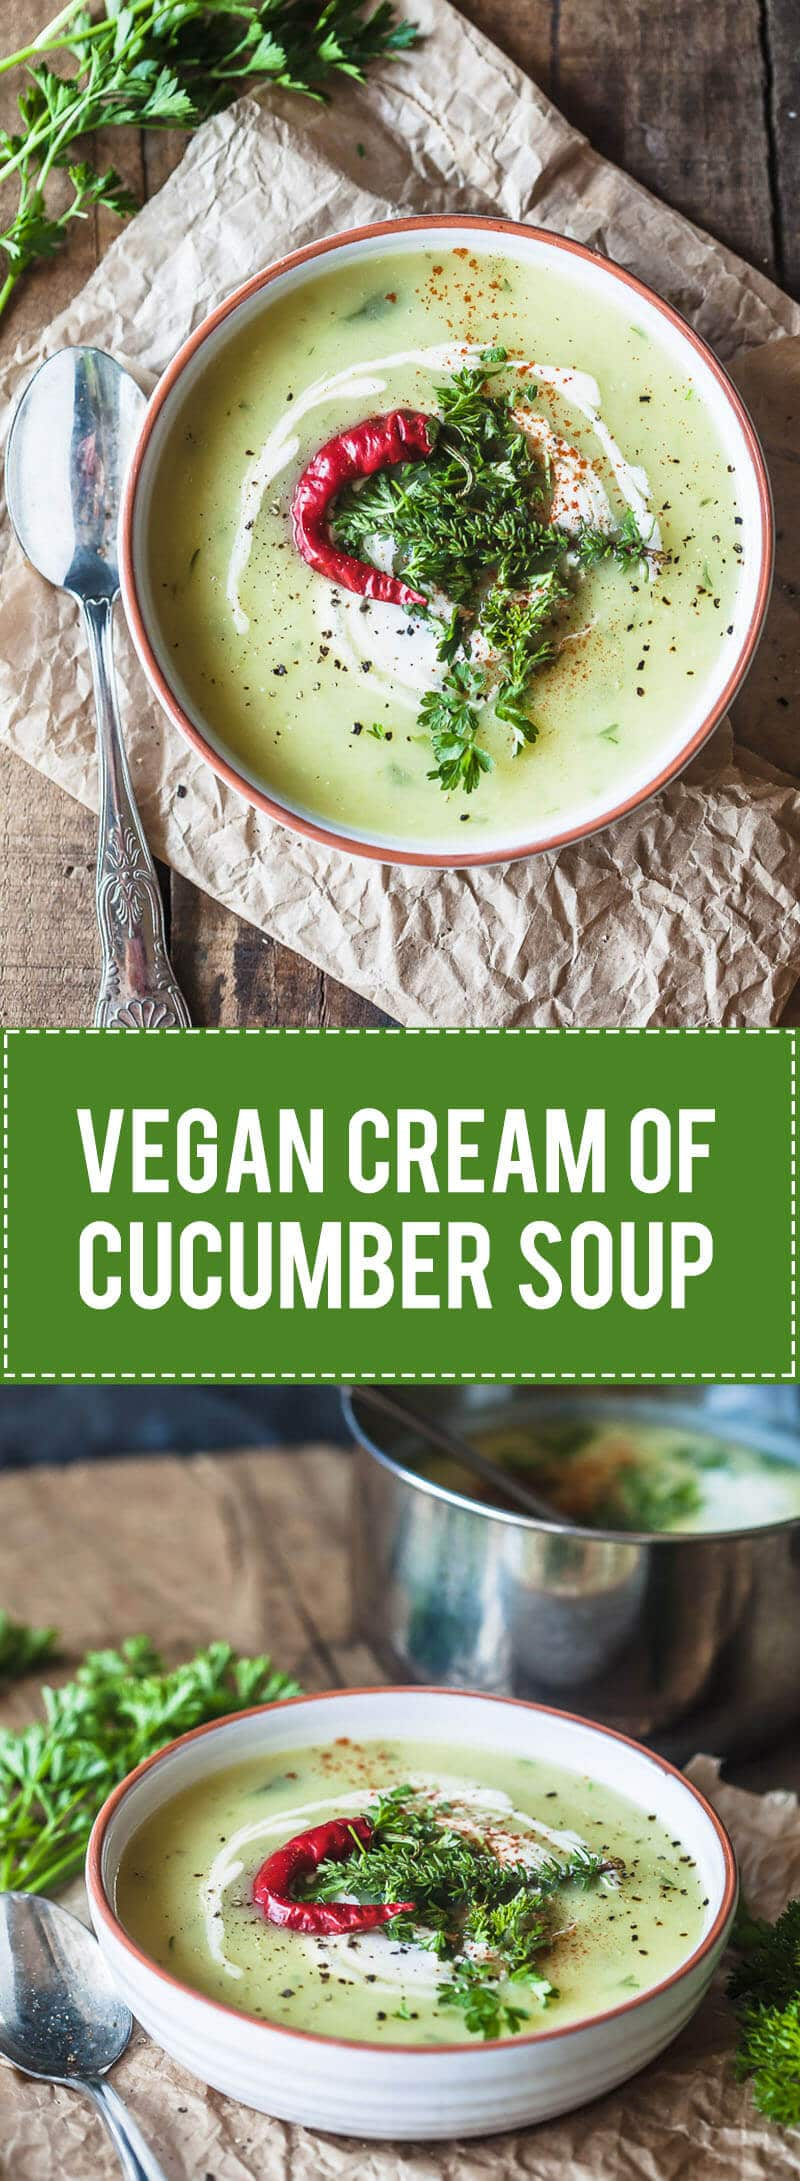 Cream of Cucumber Soup is a healthy and easy Vegan Soup. Creamy and delicious, this soup is best served hot.